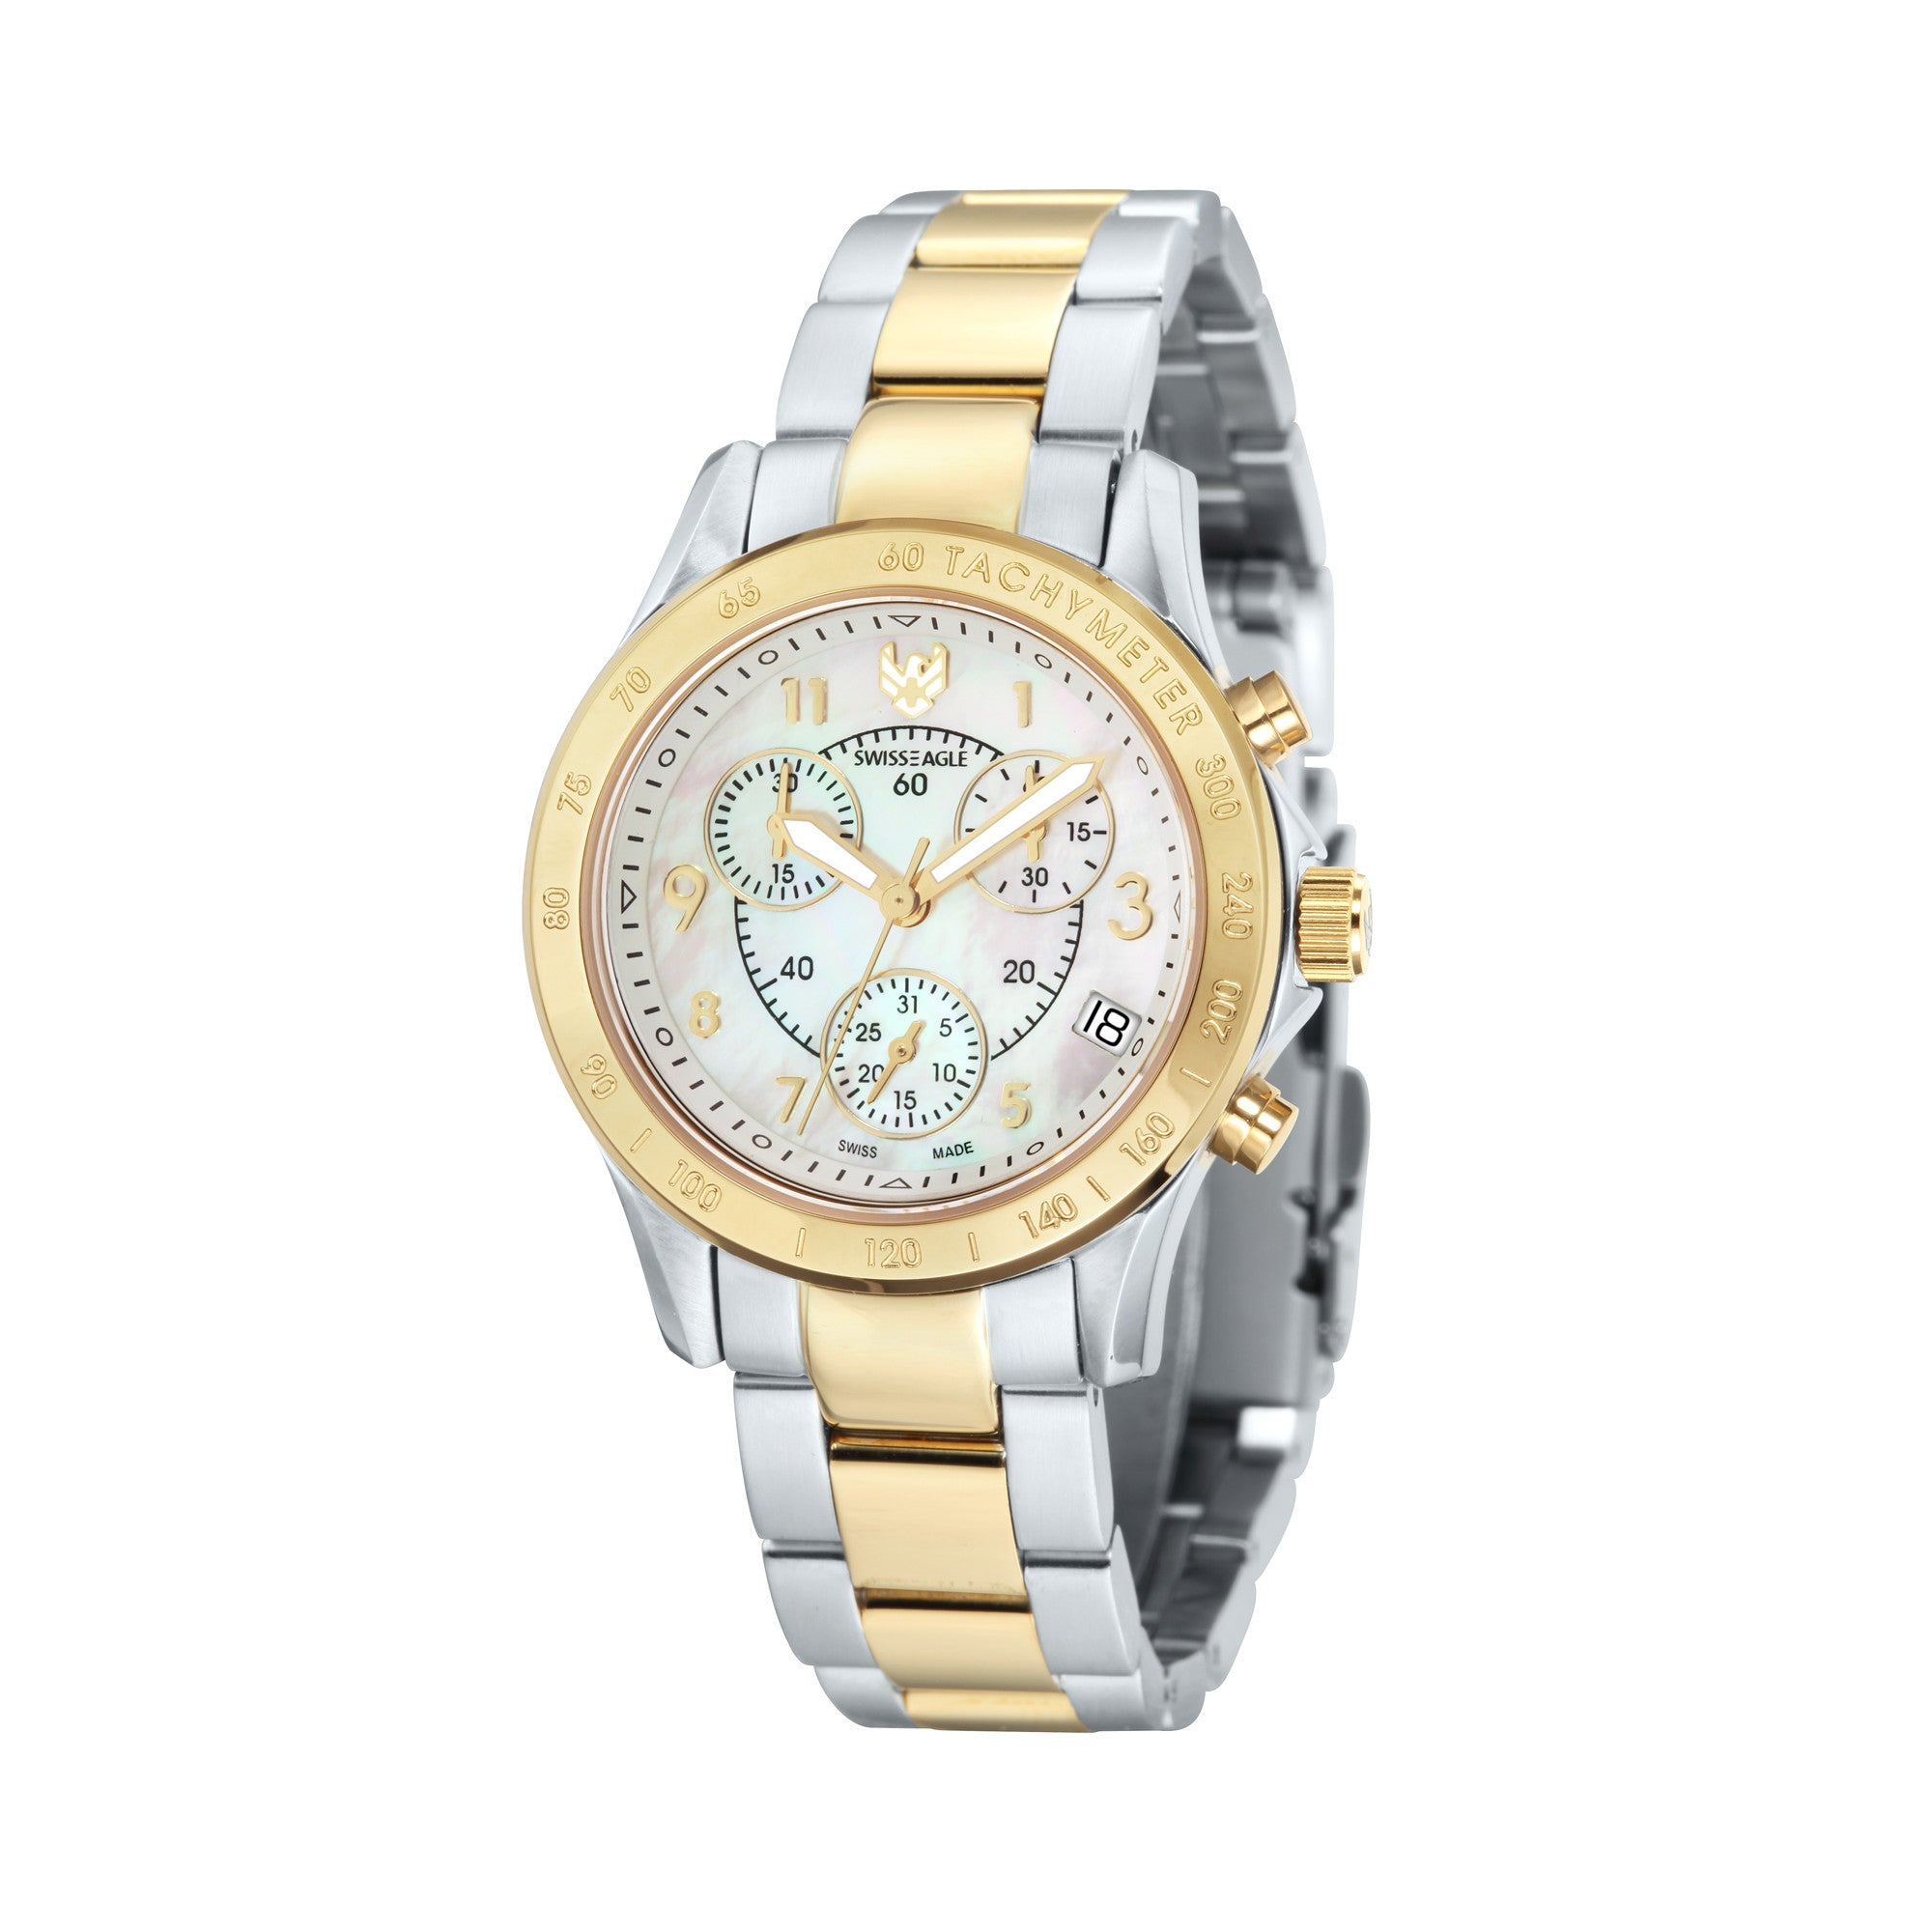 images to new se online watches swiss women click view larger eagle here zealand best